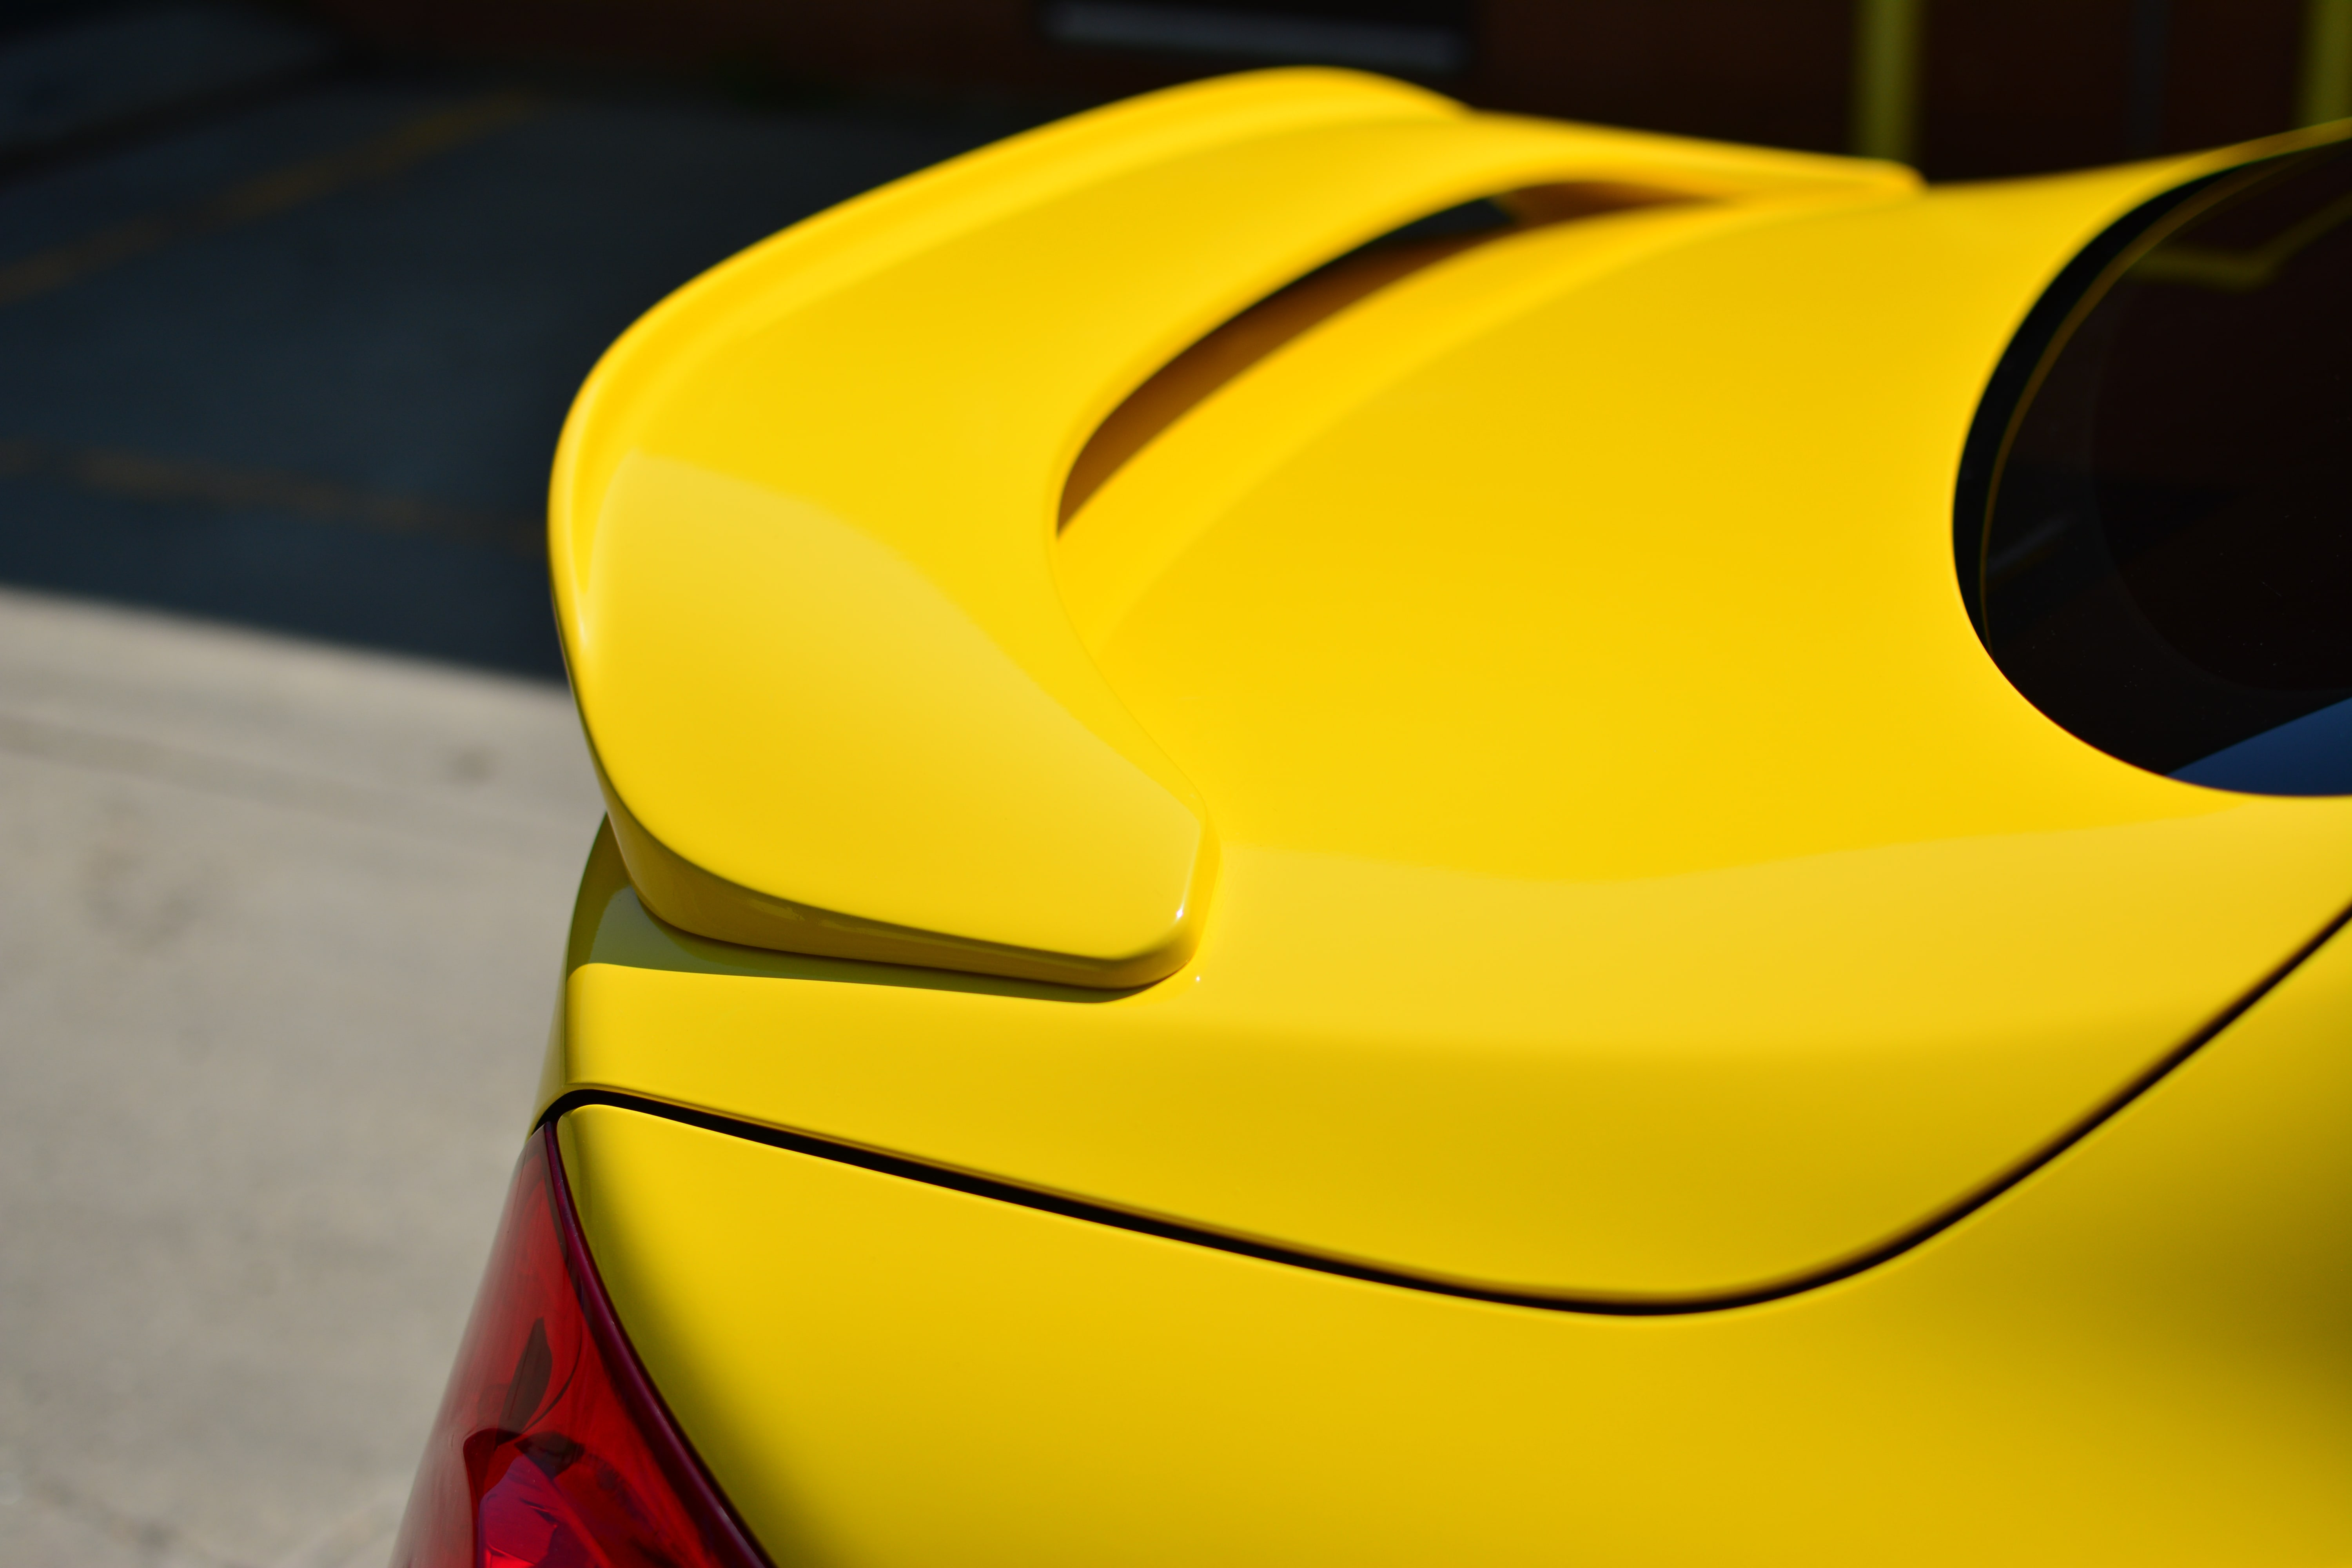 Infiniti G37 wrapped in 3M Gloss Yellow tailgate from side.